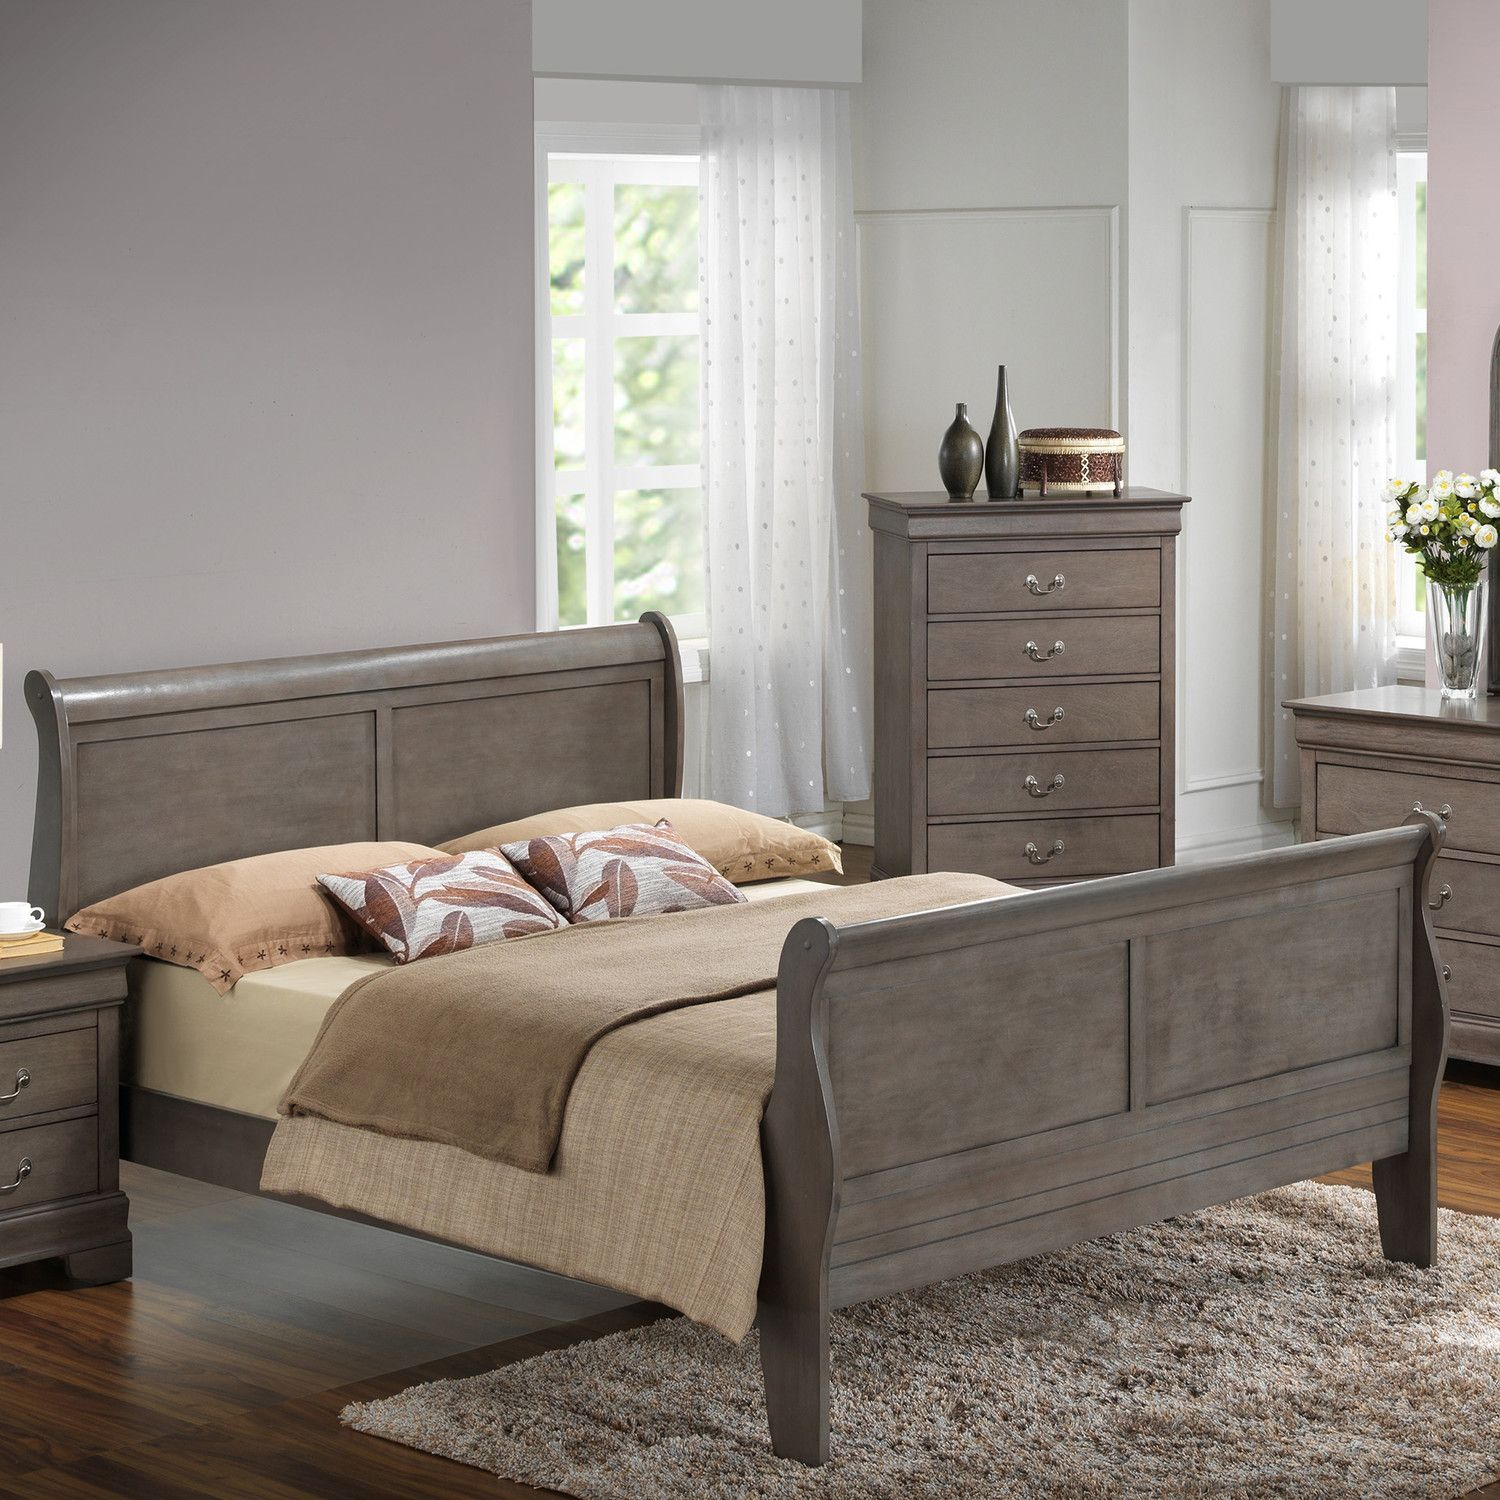 Glory Furniture Sleigh Bed Bed, Furniture, White